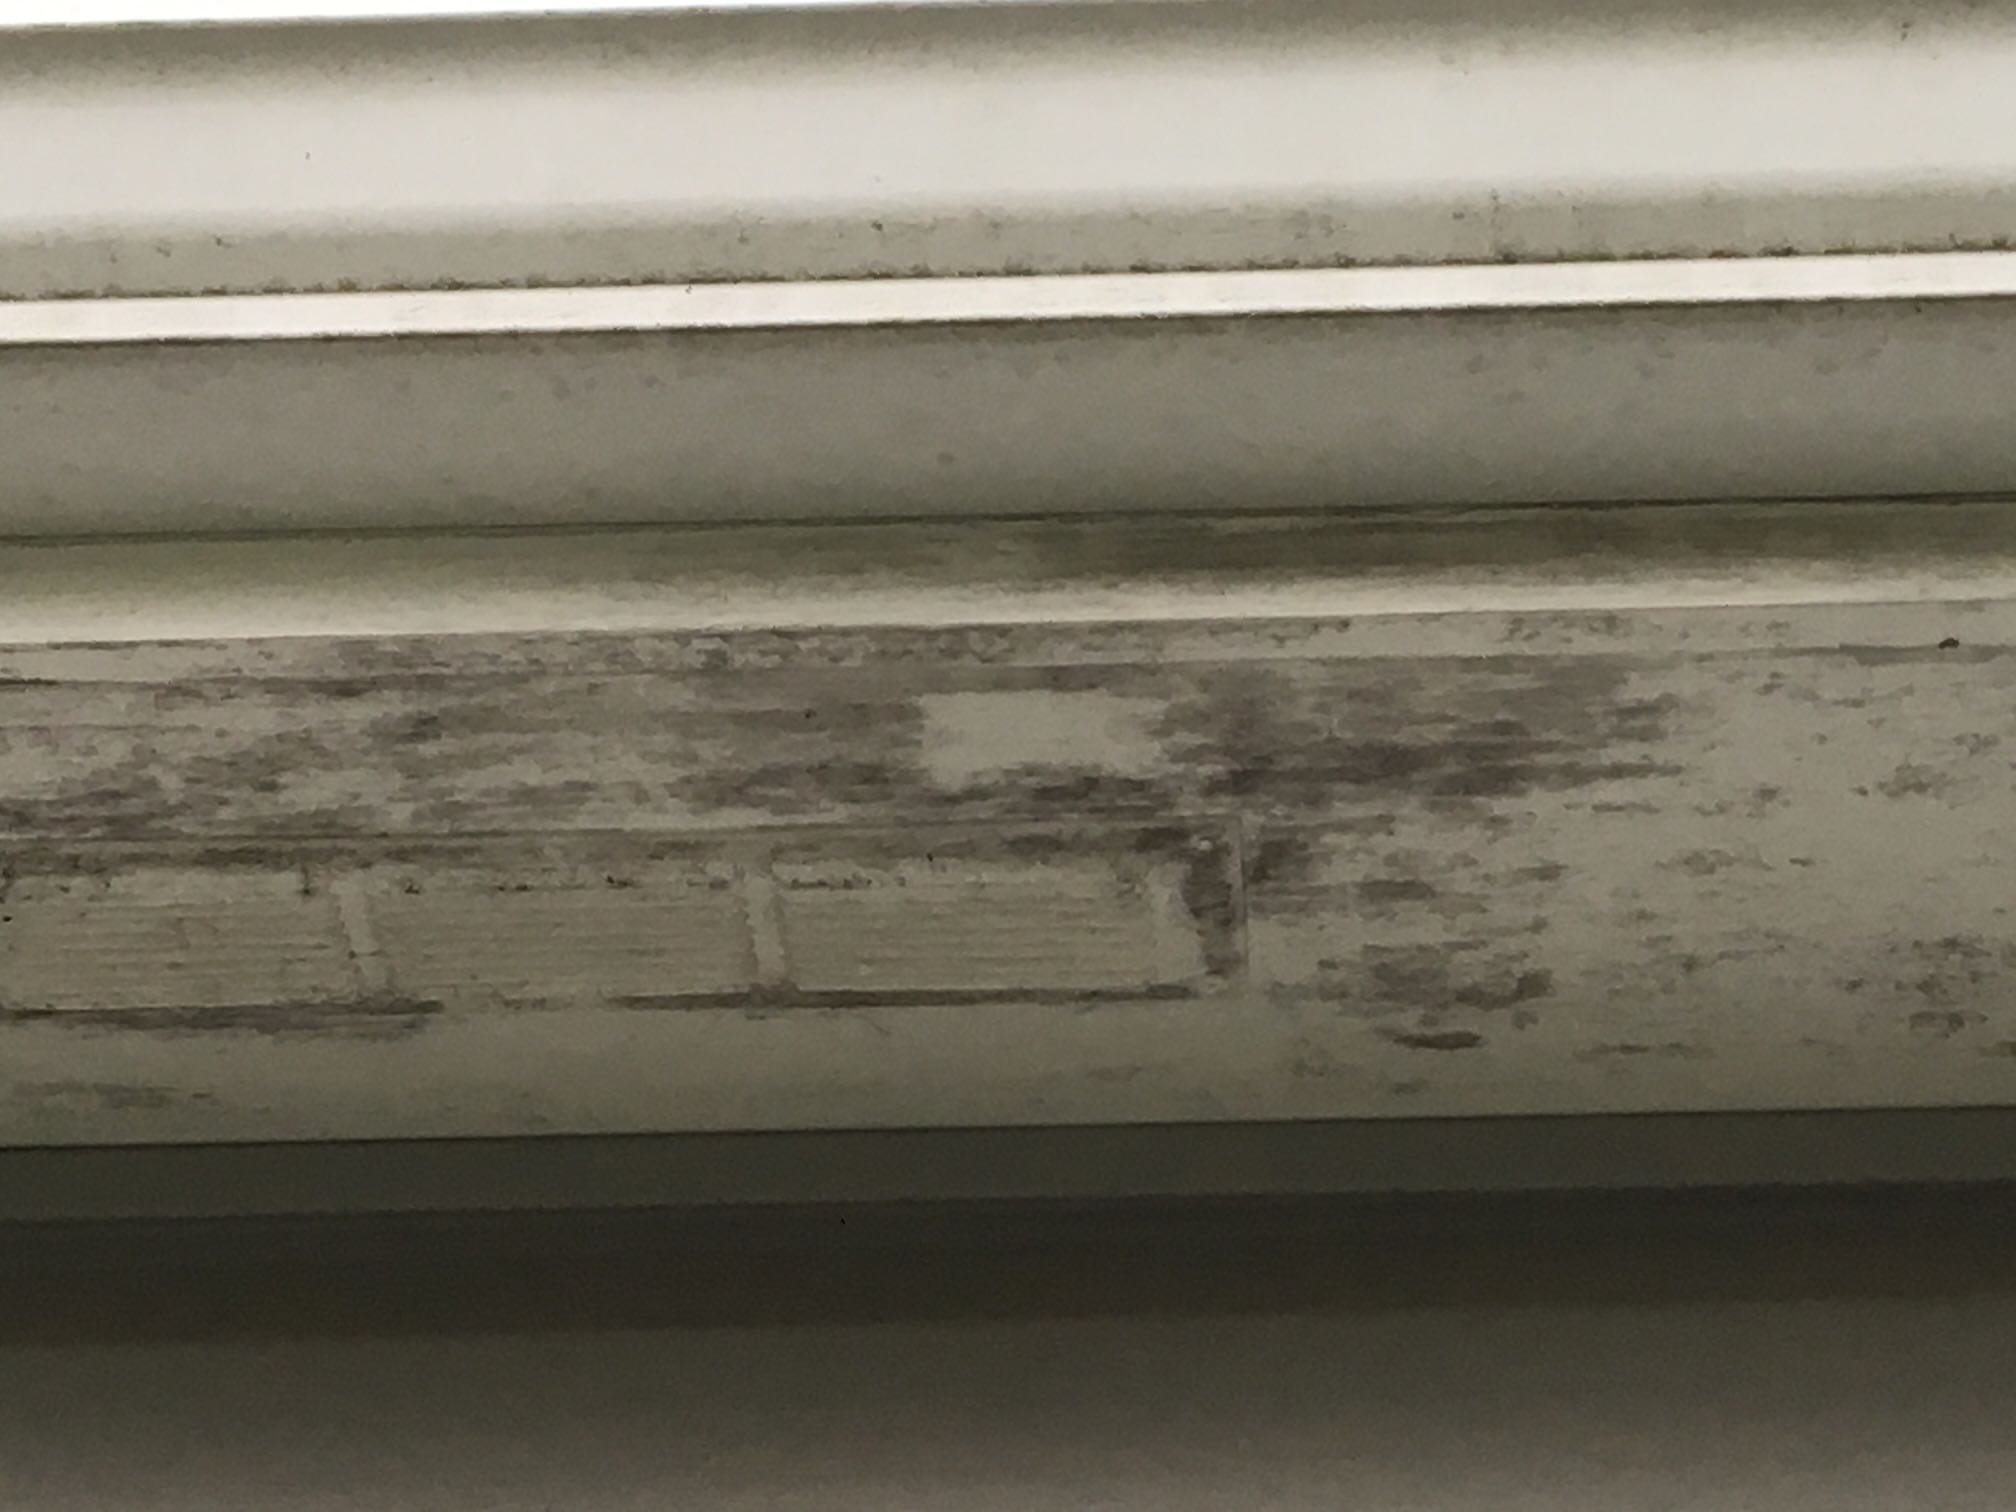 Mildew On The Eaves Of A House